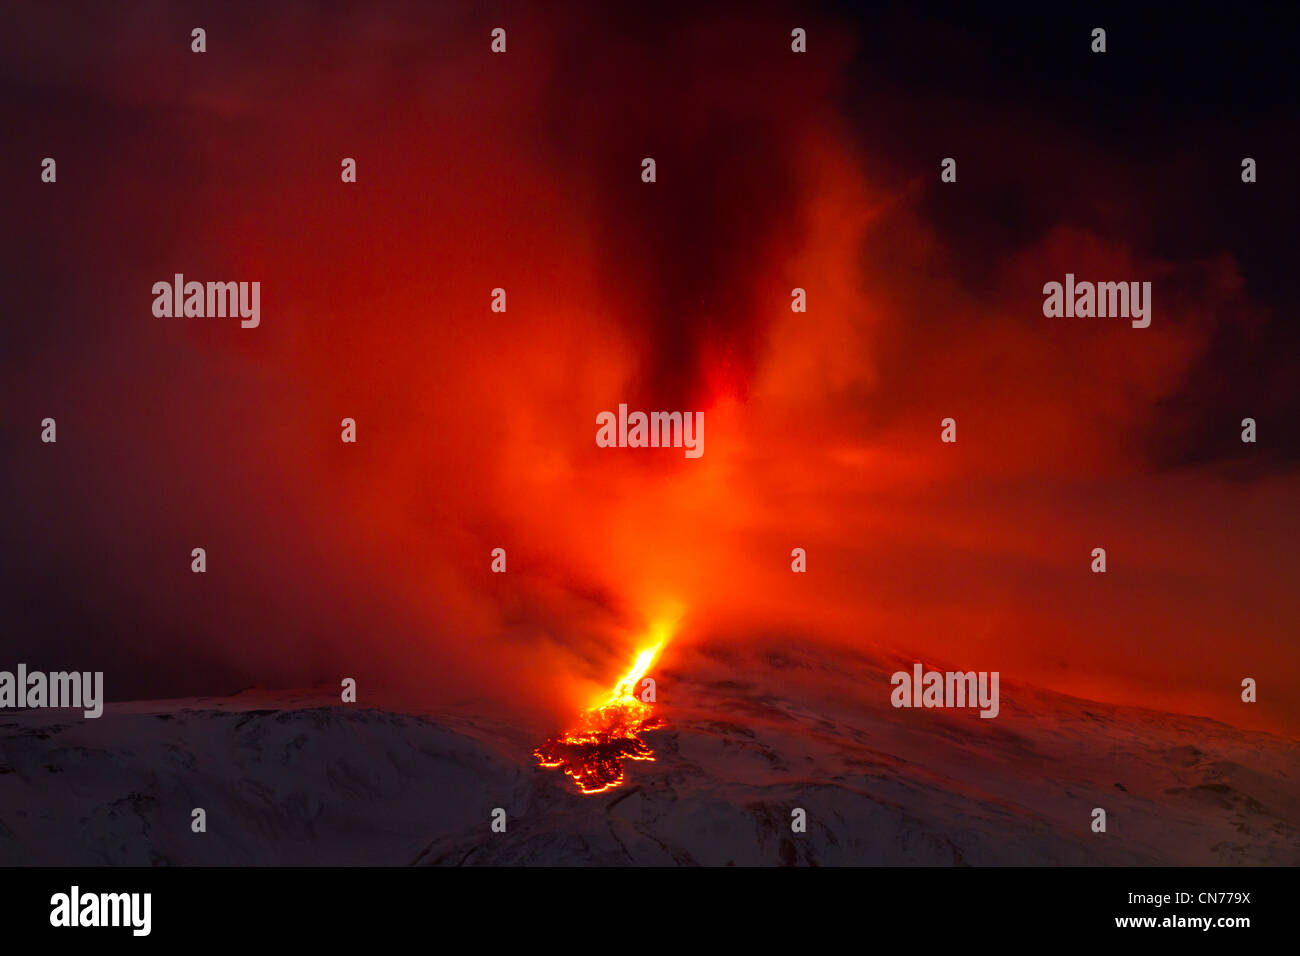 Eruption of Mount Etna, 8-9 February 2012, viewed from Santa Venerina, Sicily, Italy - Stock Image